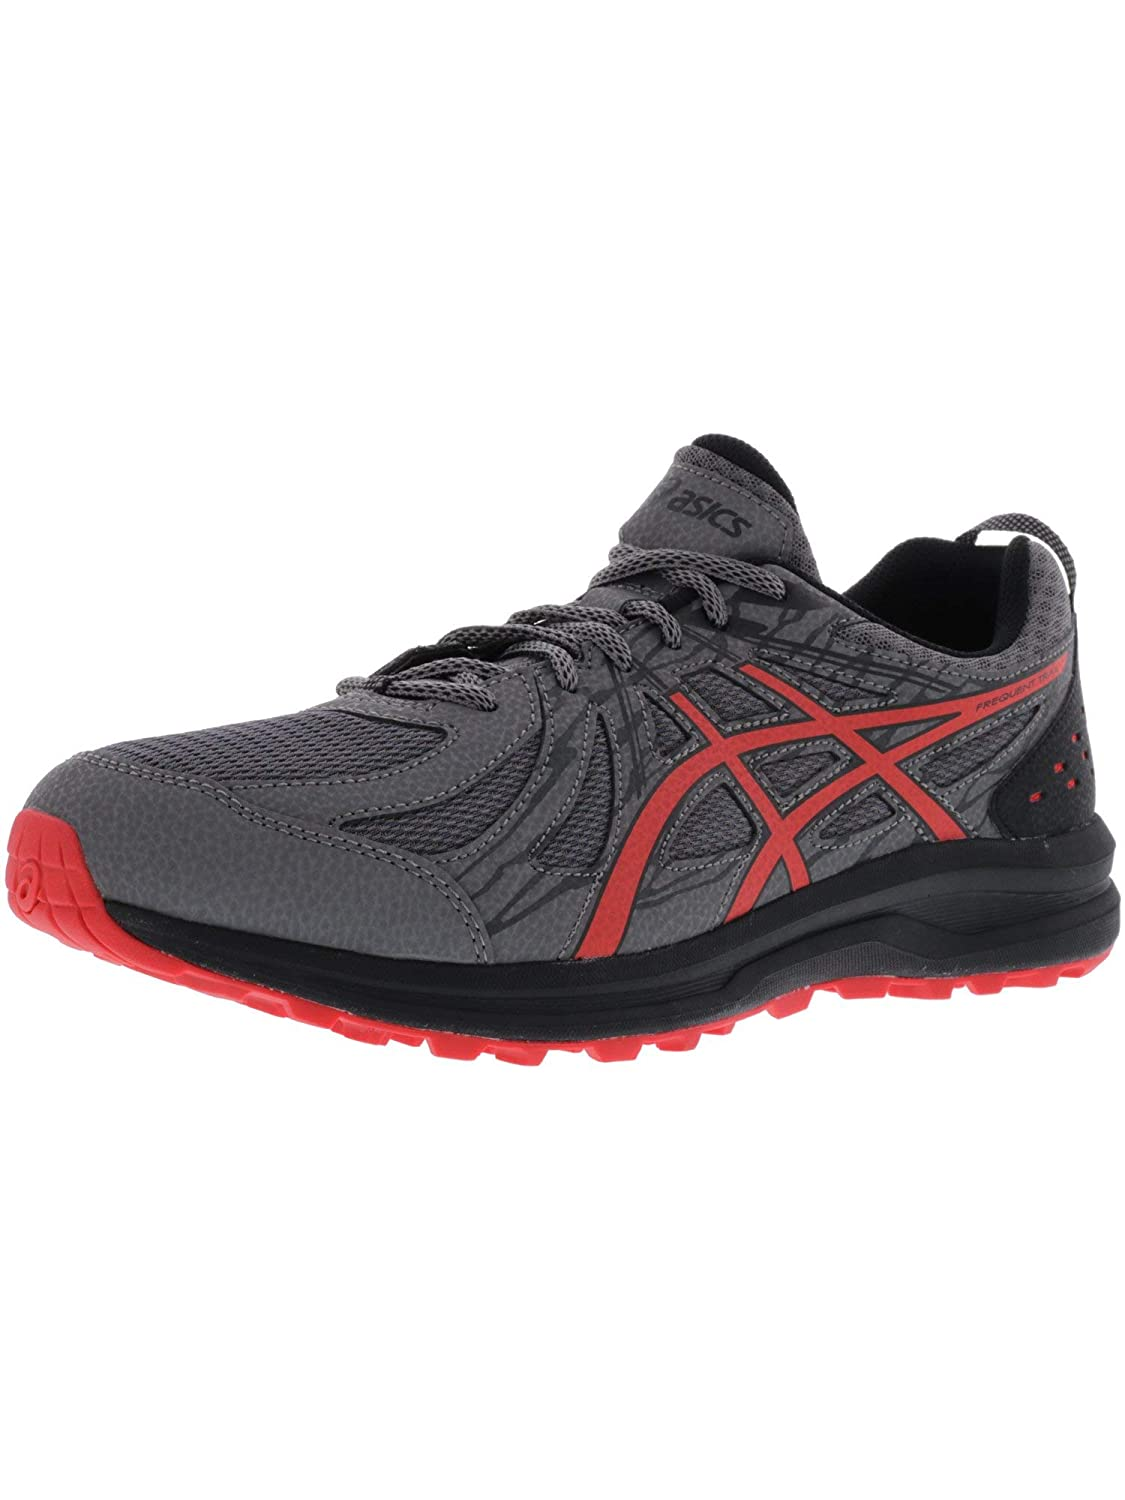 Shoe Men's Frequent Running Hsrtqd Asics Trail pUzGSMqV